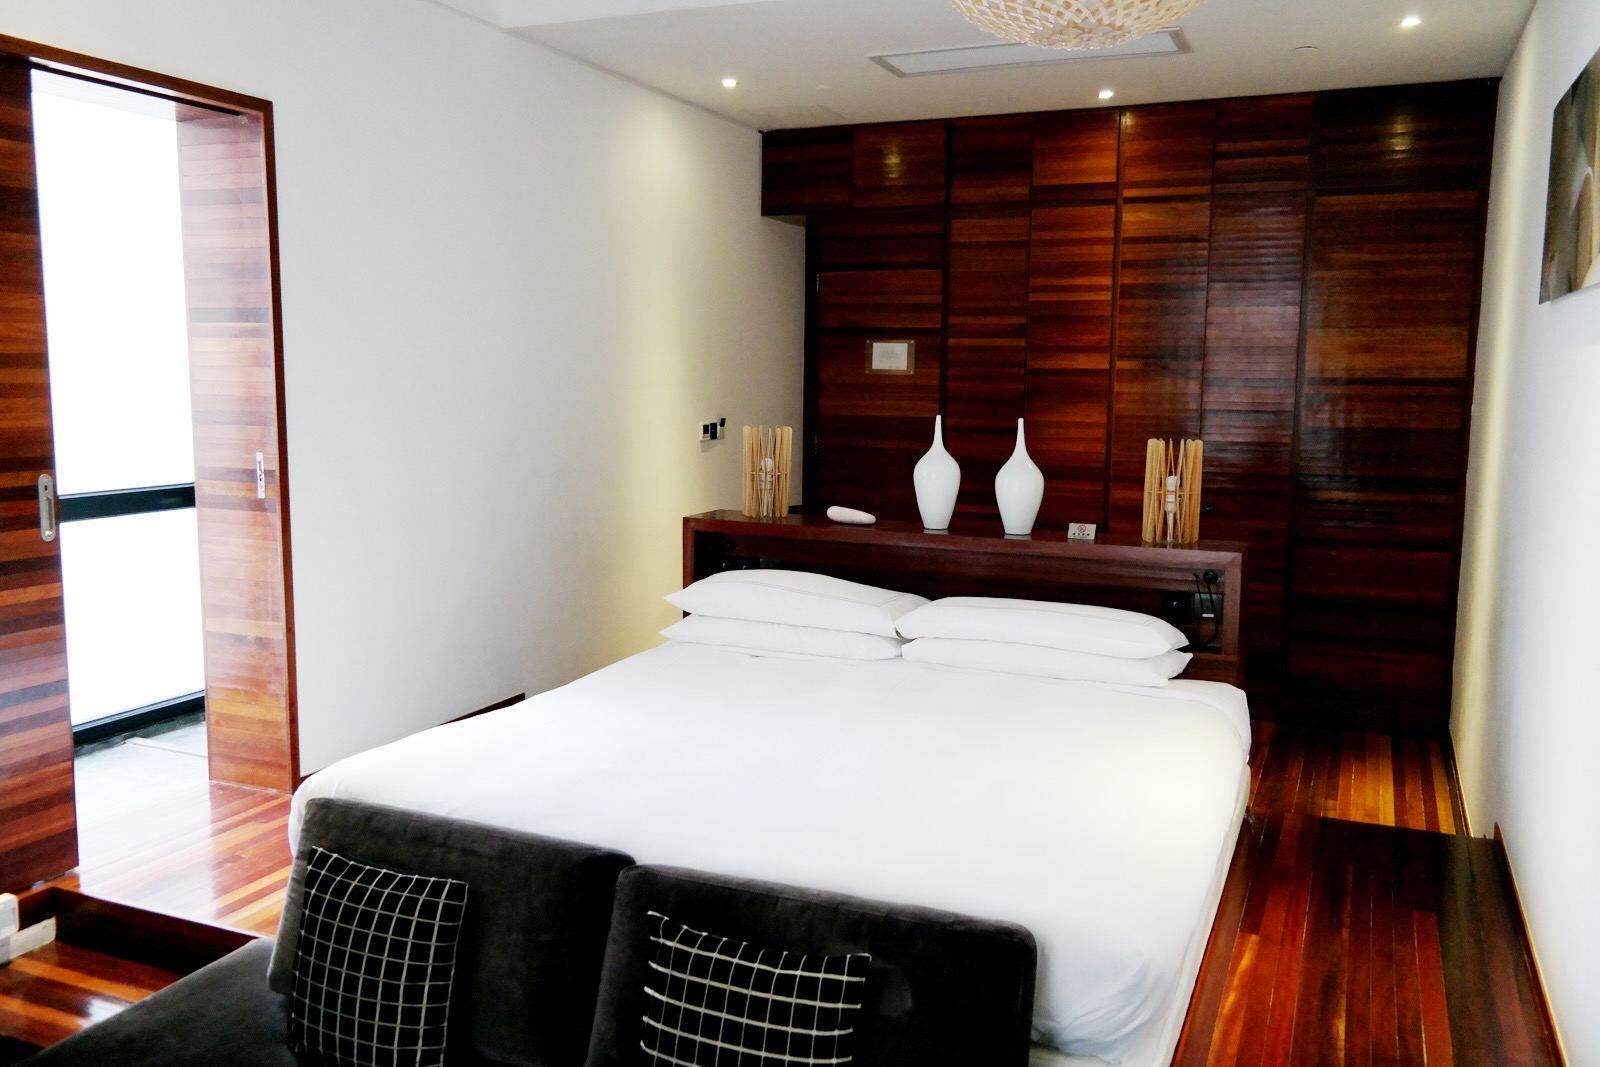 URBN Hotel Shanghai deluxe room bed wood eco chic comfort boutique hotel Tempting Places Jiaozhou Rd Jing'an district photo UsofParis travel blog